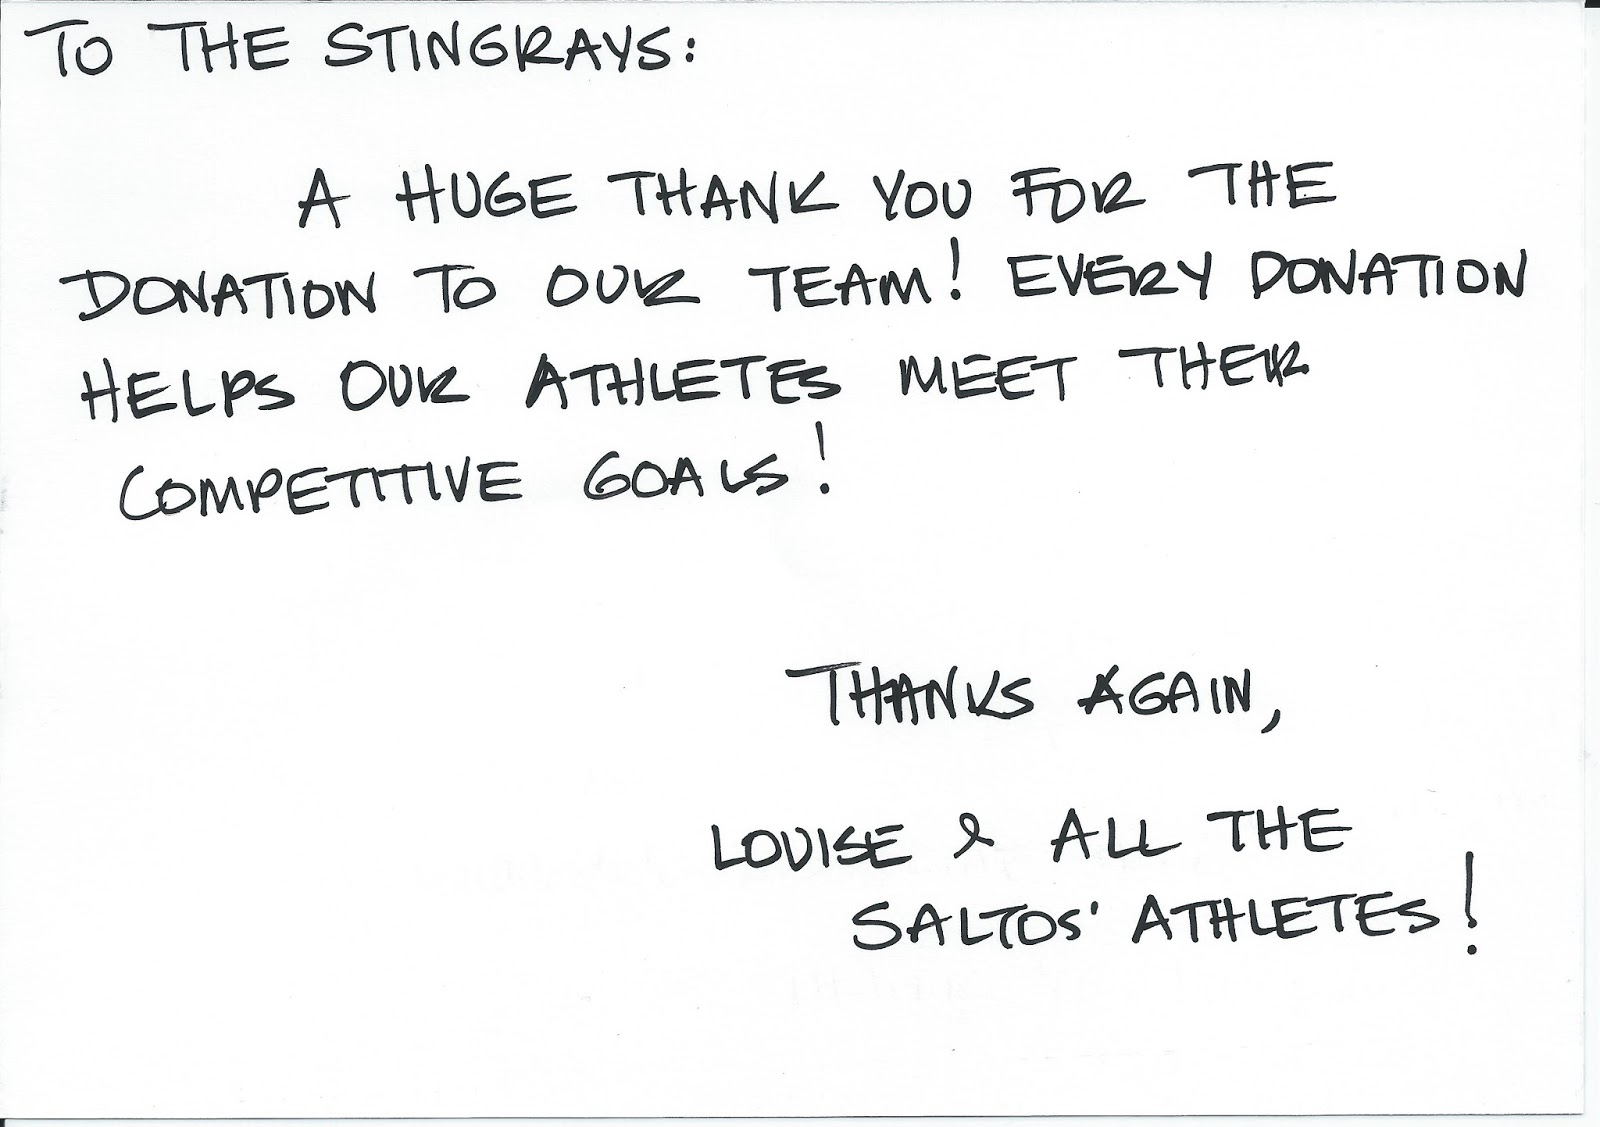 Work Thank You Note Perth Stingrays Aquatic Club Thanks From Saltos  Athletics 10